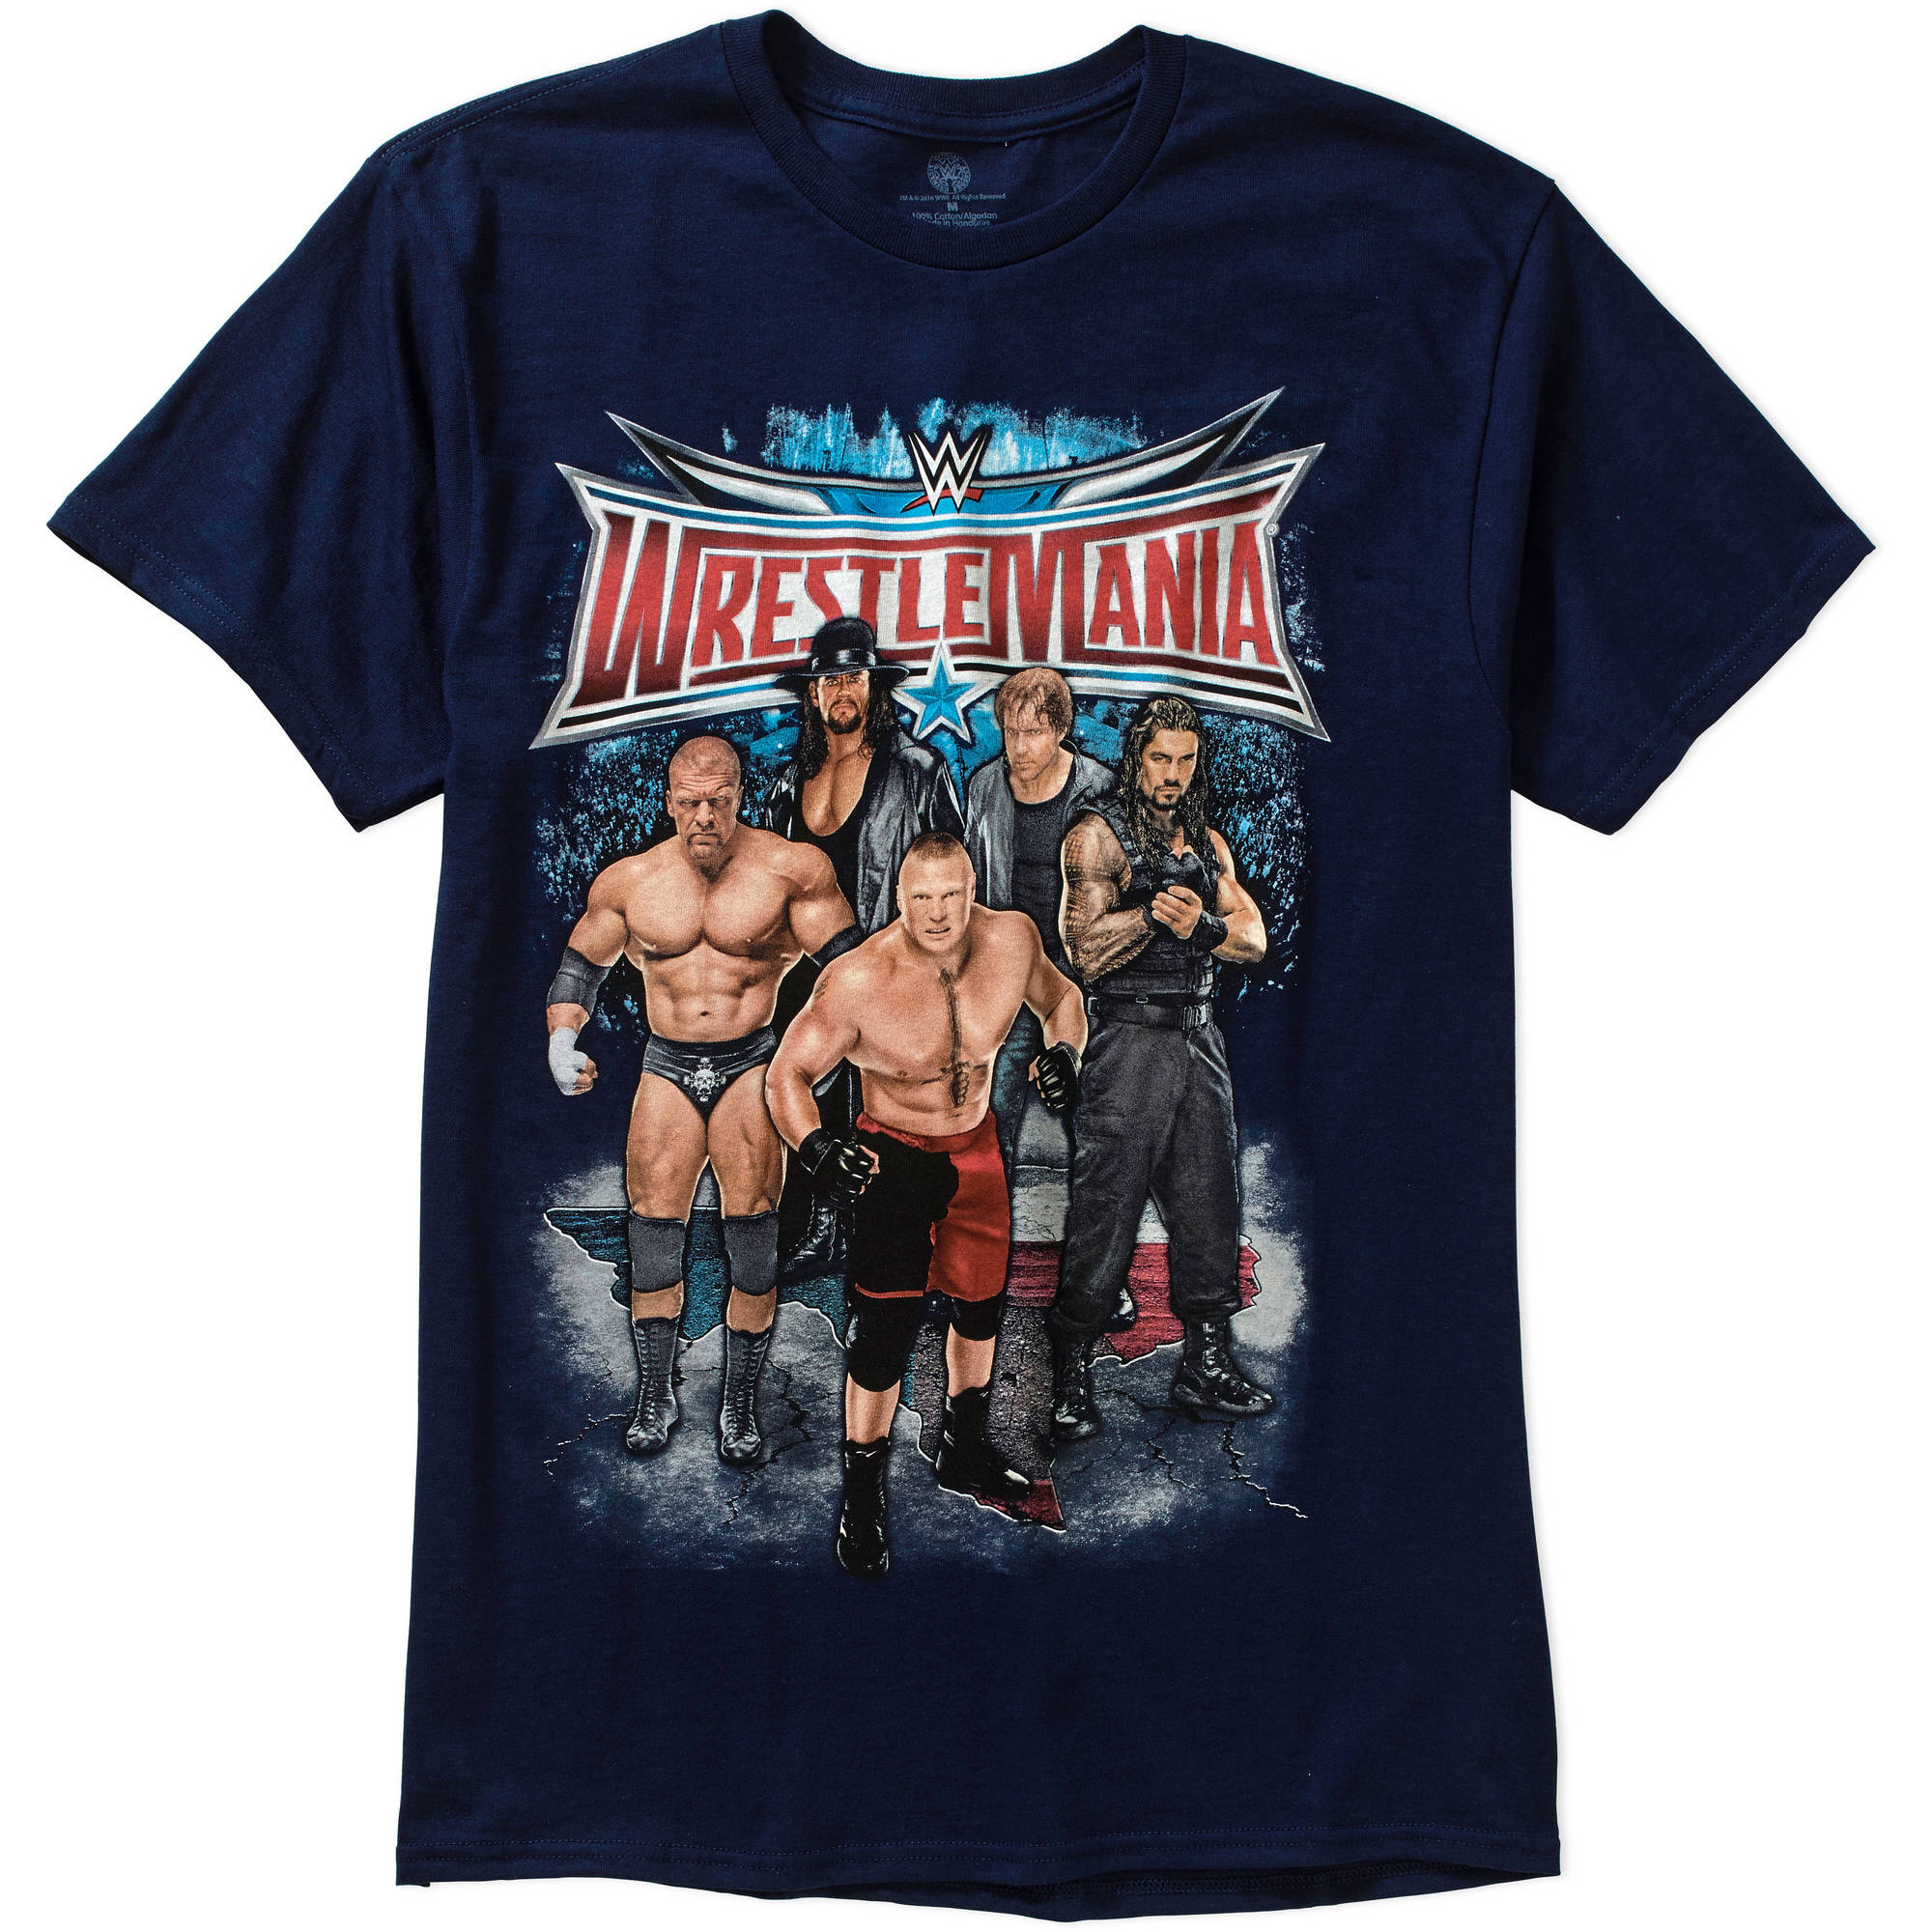 Wrestlemania Group Shot Men's Graphic Tee